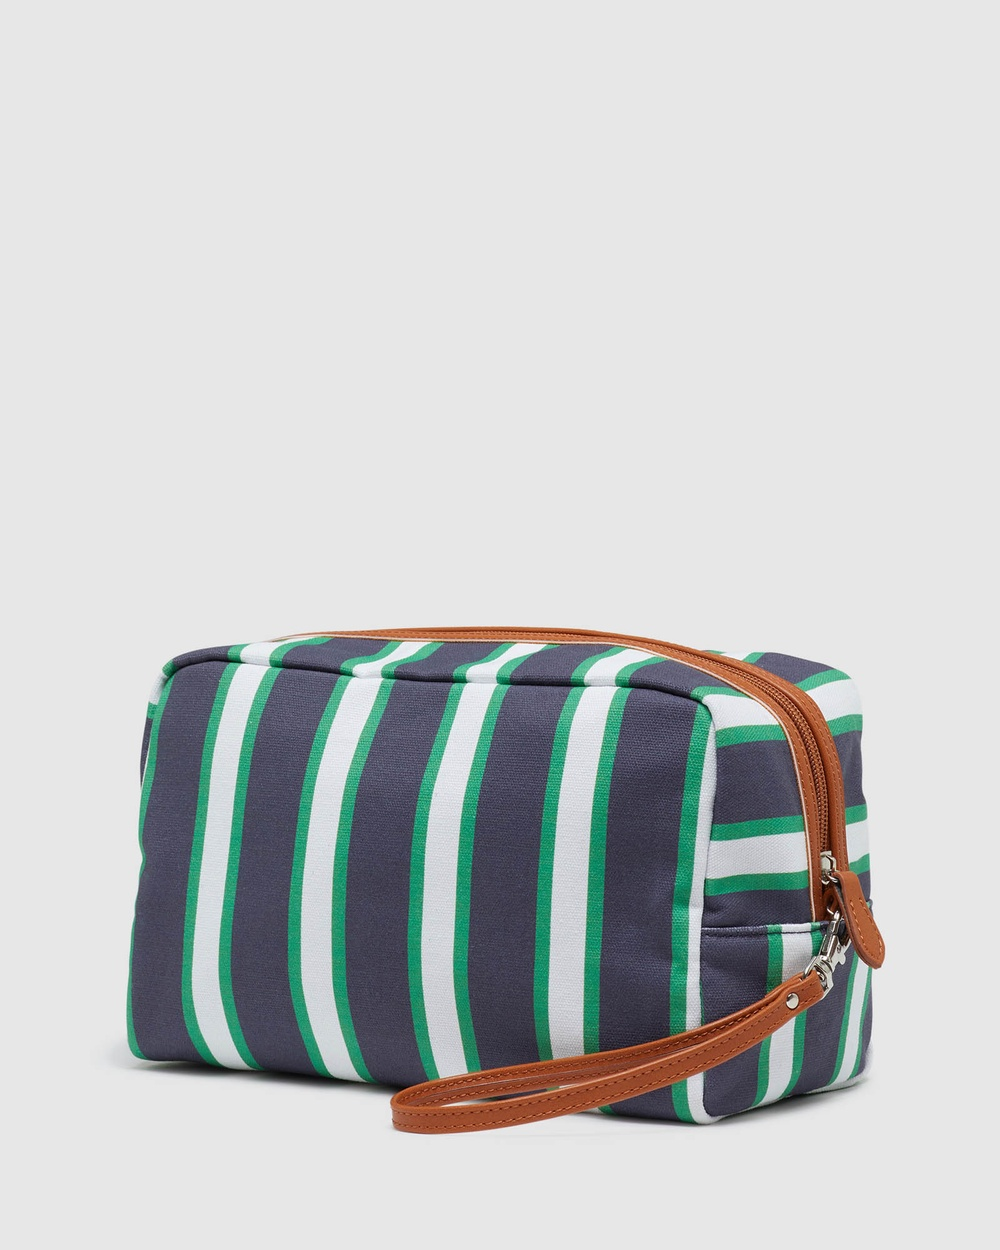 Oxford Henry Washbag Toiletry Bags Green